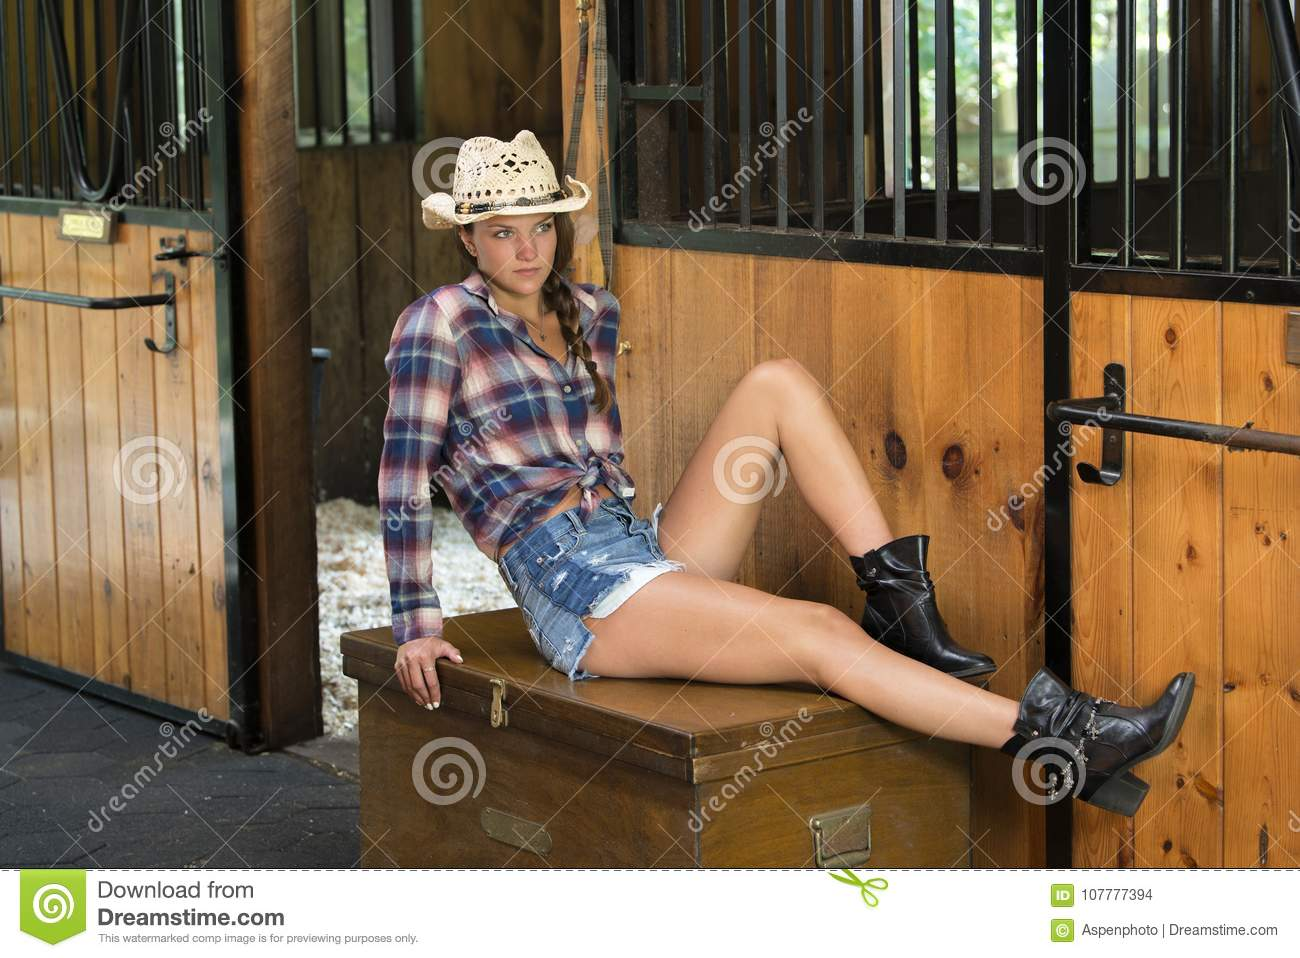 293 Riding Attire Photos Free Royalty Free Stock Photos From Dreamstime